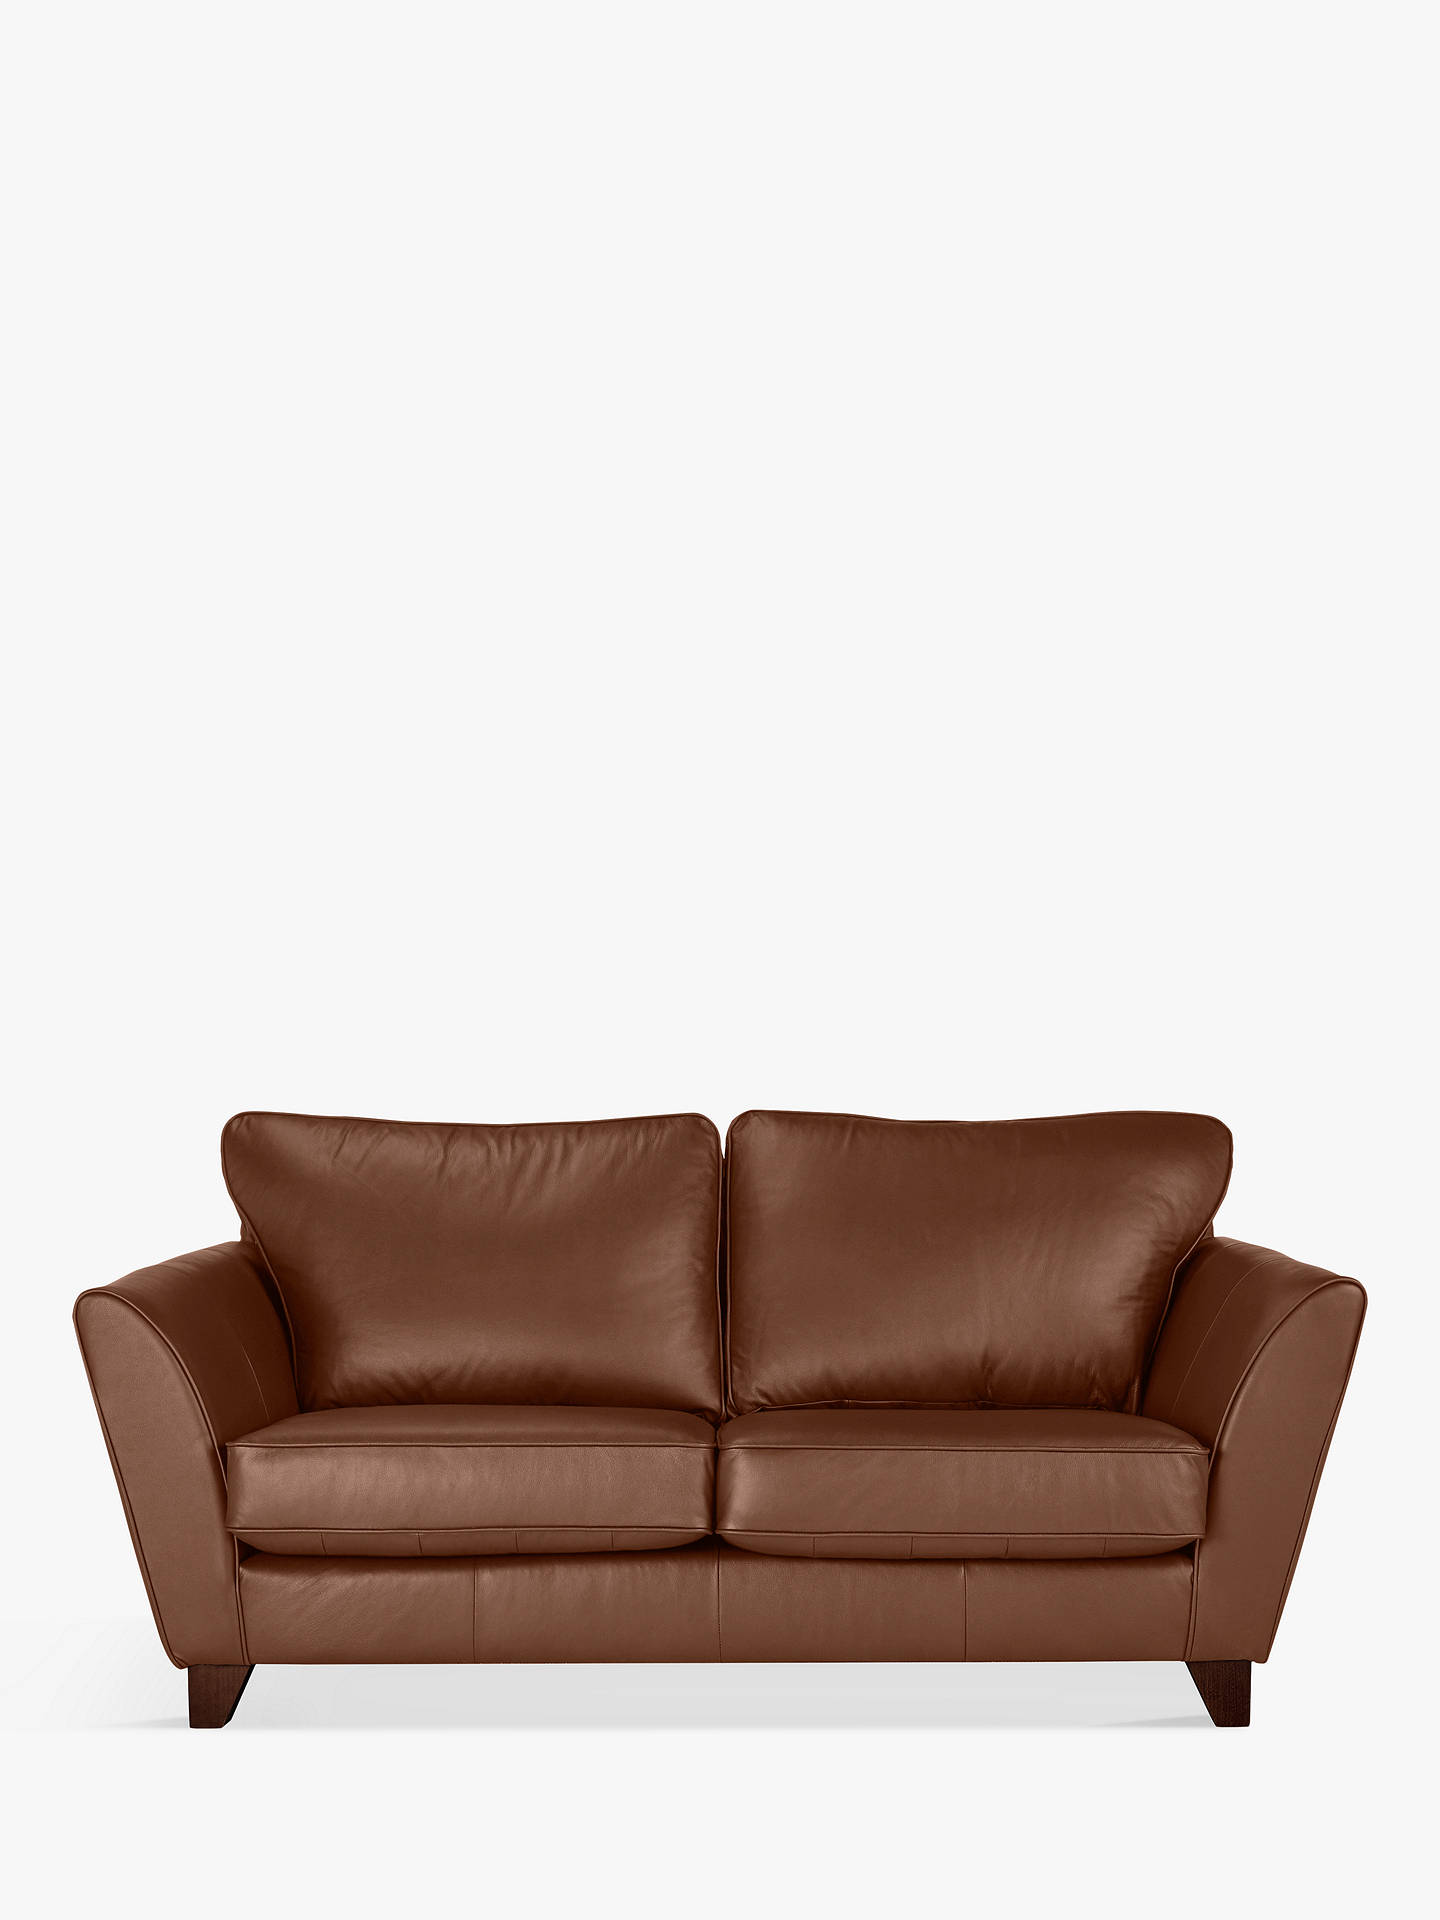 Buy John Lewis & Partners Oslo Leather Medium 2 Seater Sofa, Dark Leg, Contempo Castanga Online at johnlewis.com